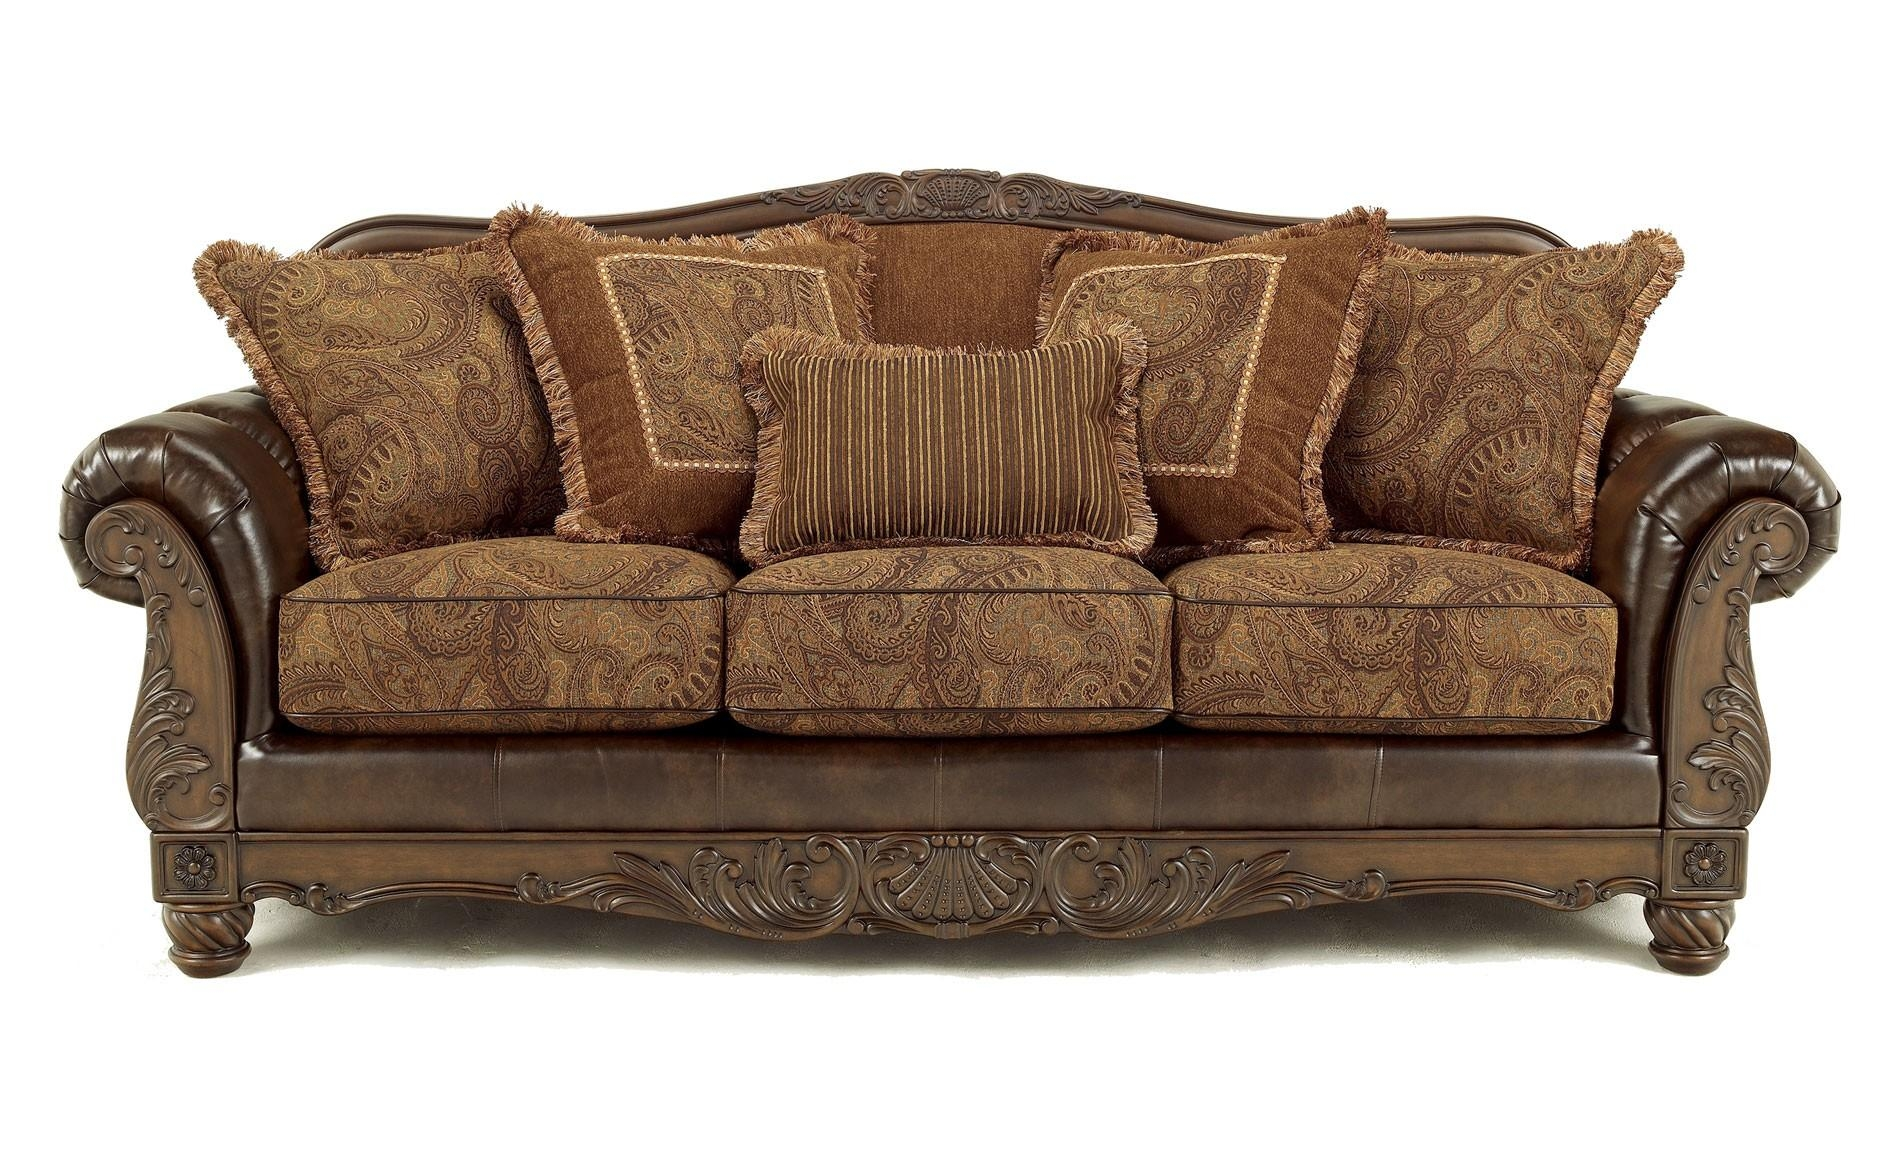 Old Fashioned Sofa Styles Know Your Antique Couch Sofa And Settee In Old  Fashioned Sofas (